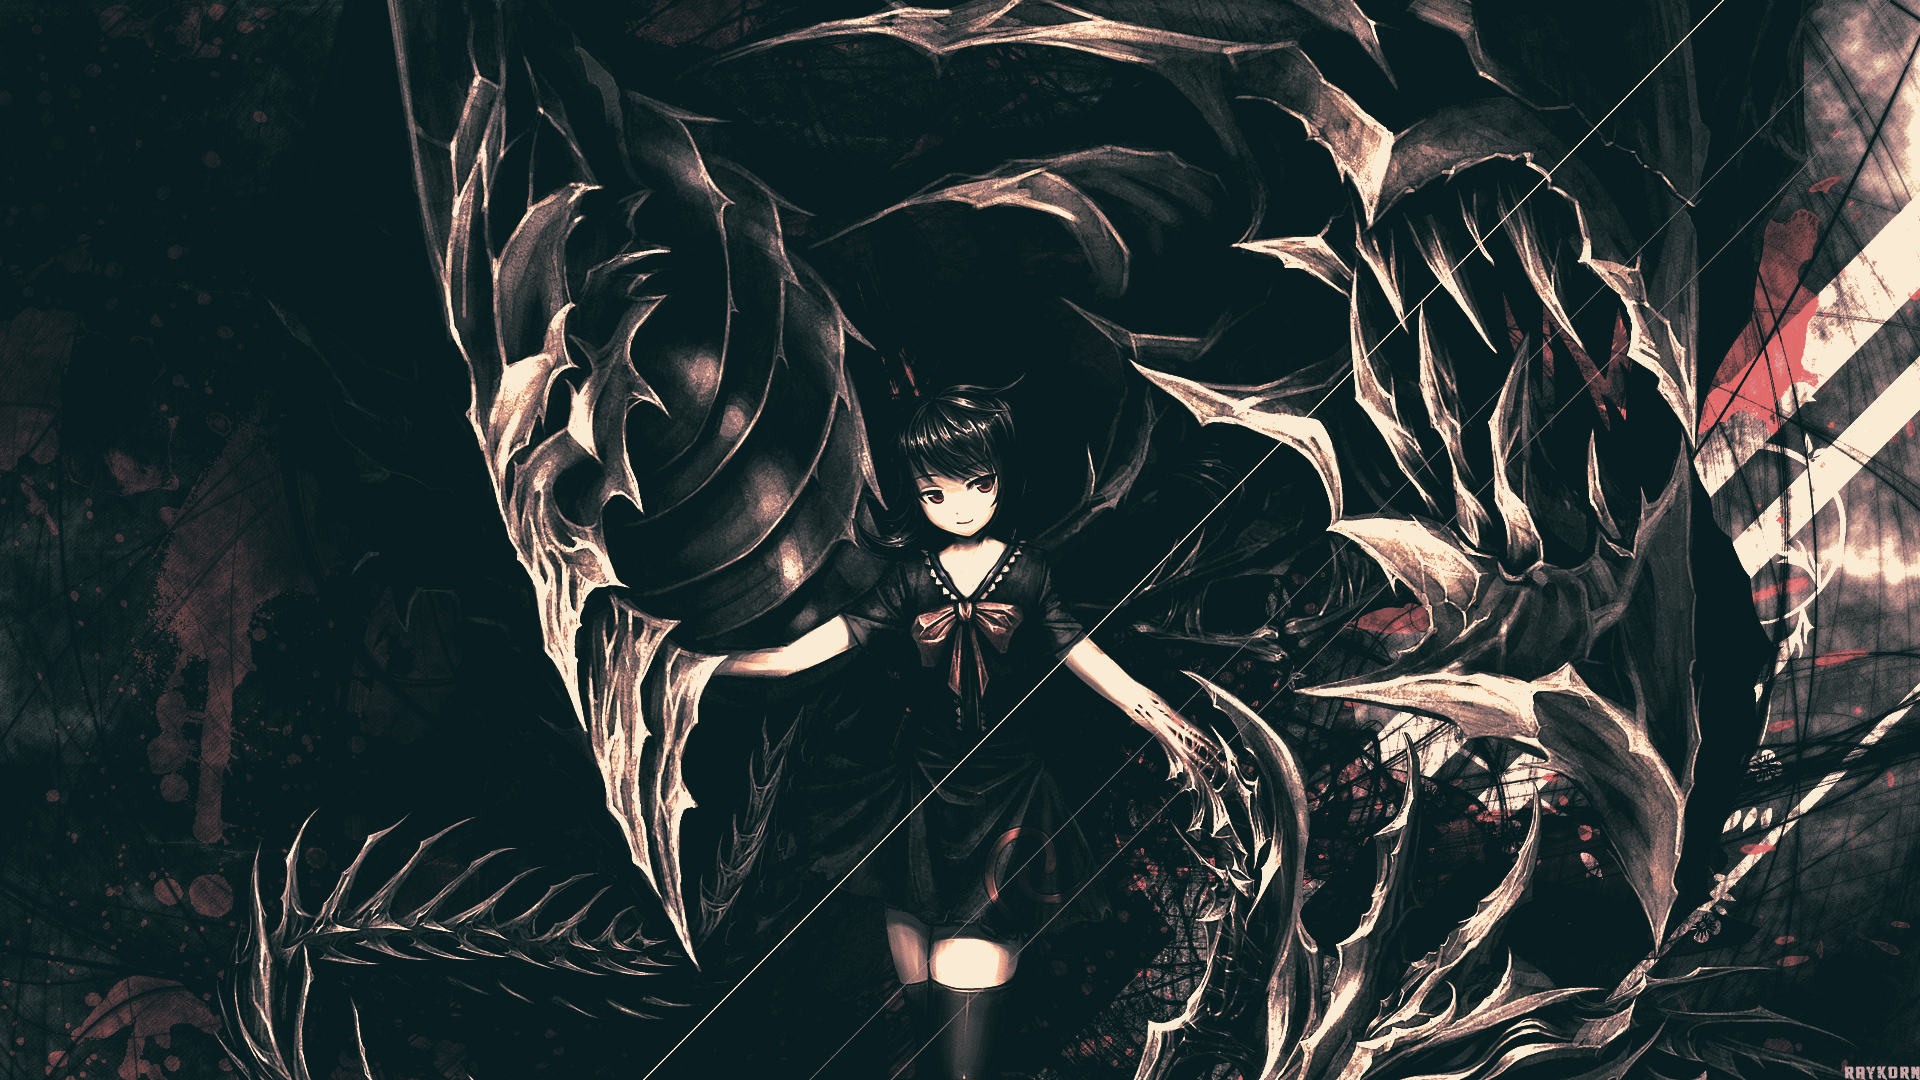 Anime Shadow Girl Wallpaper by Raykorn on DeviantArt